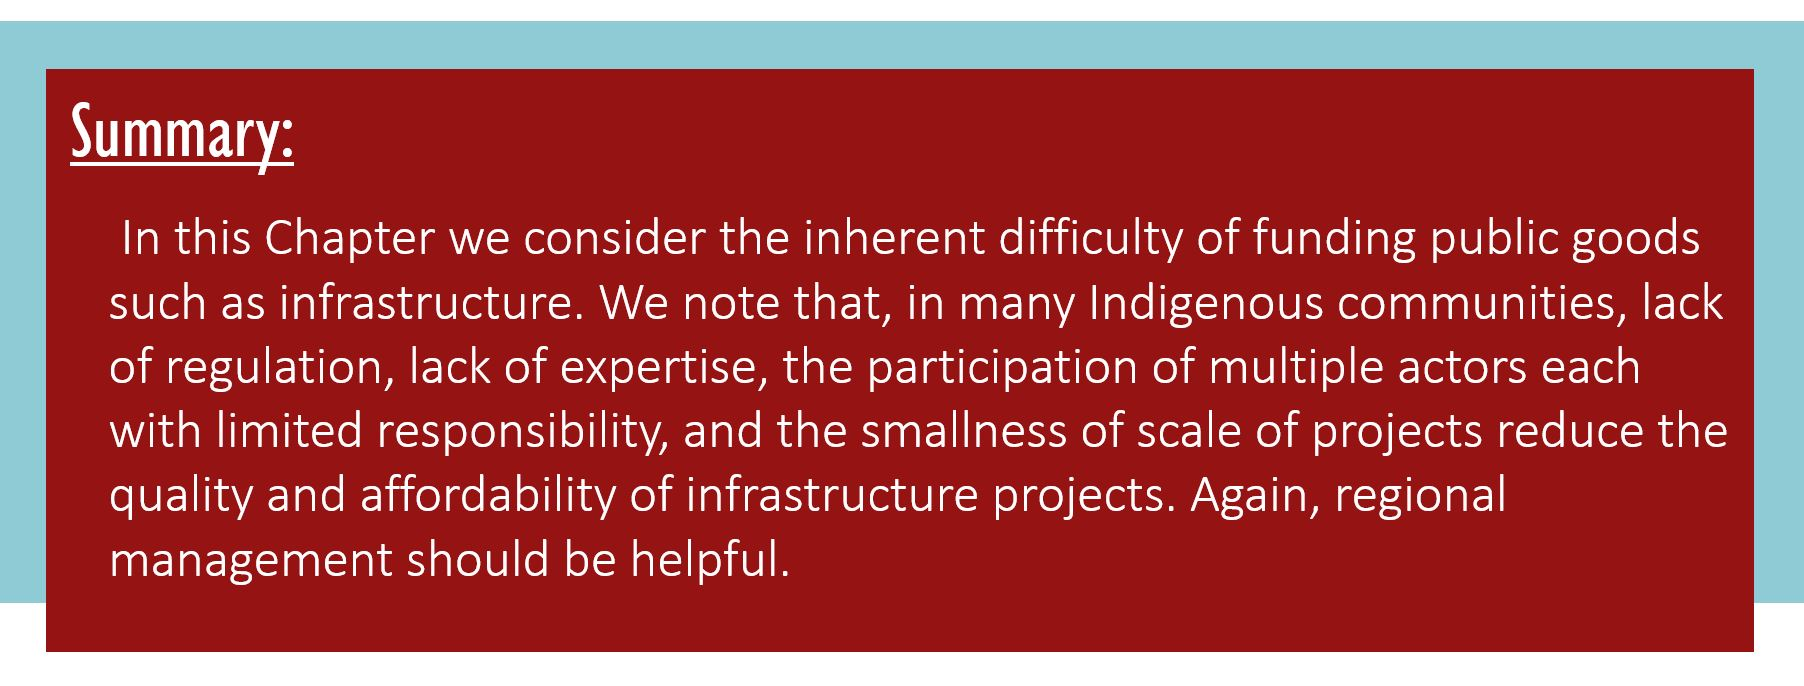 Summary: In this Chapter we consider the inherent difficulty of funding public goods such as infrastructure. We note that, in many Indigenous communities, lack of regulation, lack of expertise, the participation of multiple actors each with limited responsibility, and the smallness of scale of projects reduce the quality and affordability of infrastructure projects. Again, regional management should be helpful.